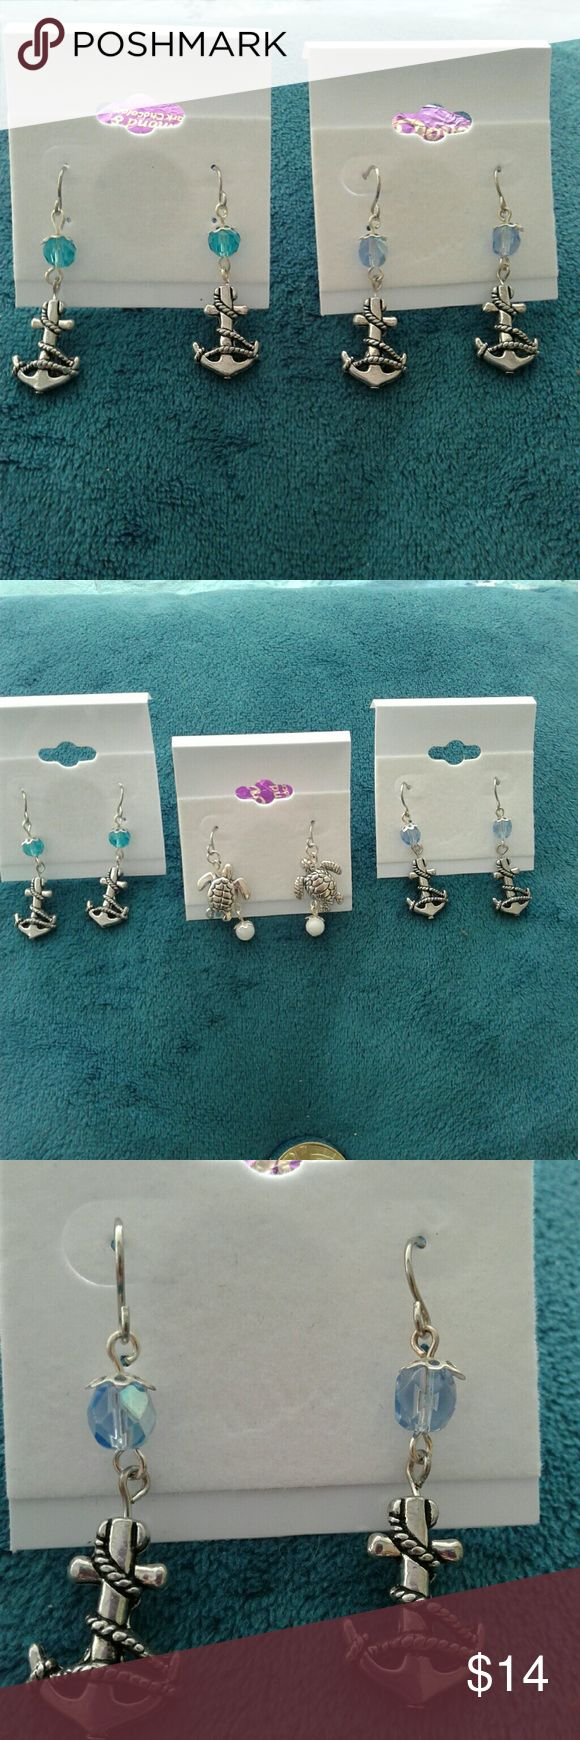 """Handmade Anchor earrings Handmade dangle earrings Brand new!! Silver Anchor charm with rope detail with beads..2 colors available,  blue or teal. 2 available! Measurements: 1 3/4"""" long 1/2"""" wide. Silver turtle charm with white pearl, so precious! Measurements: 1 1/2""""  long 1/2"""" wide. 1 available! Only $14 each!!! Jewelry Earrings"""